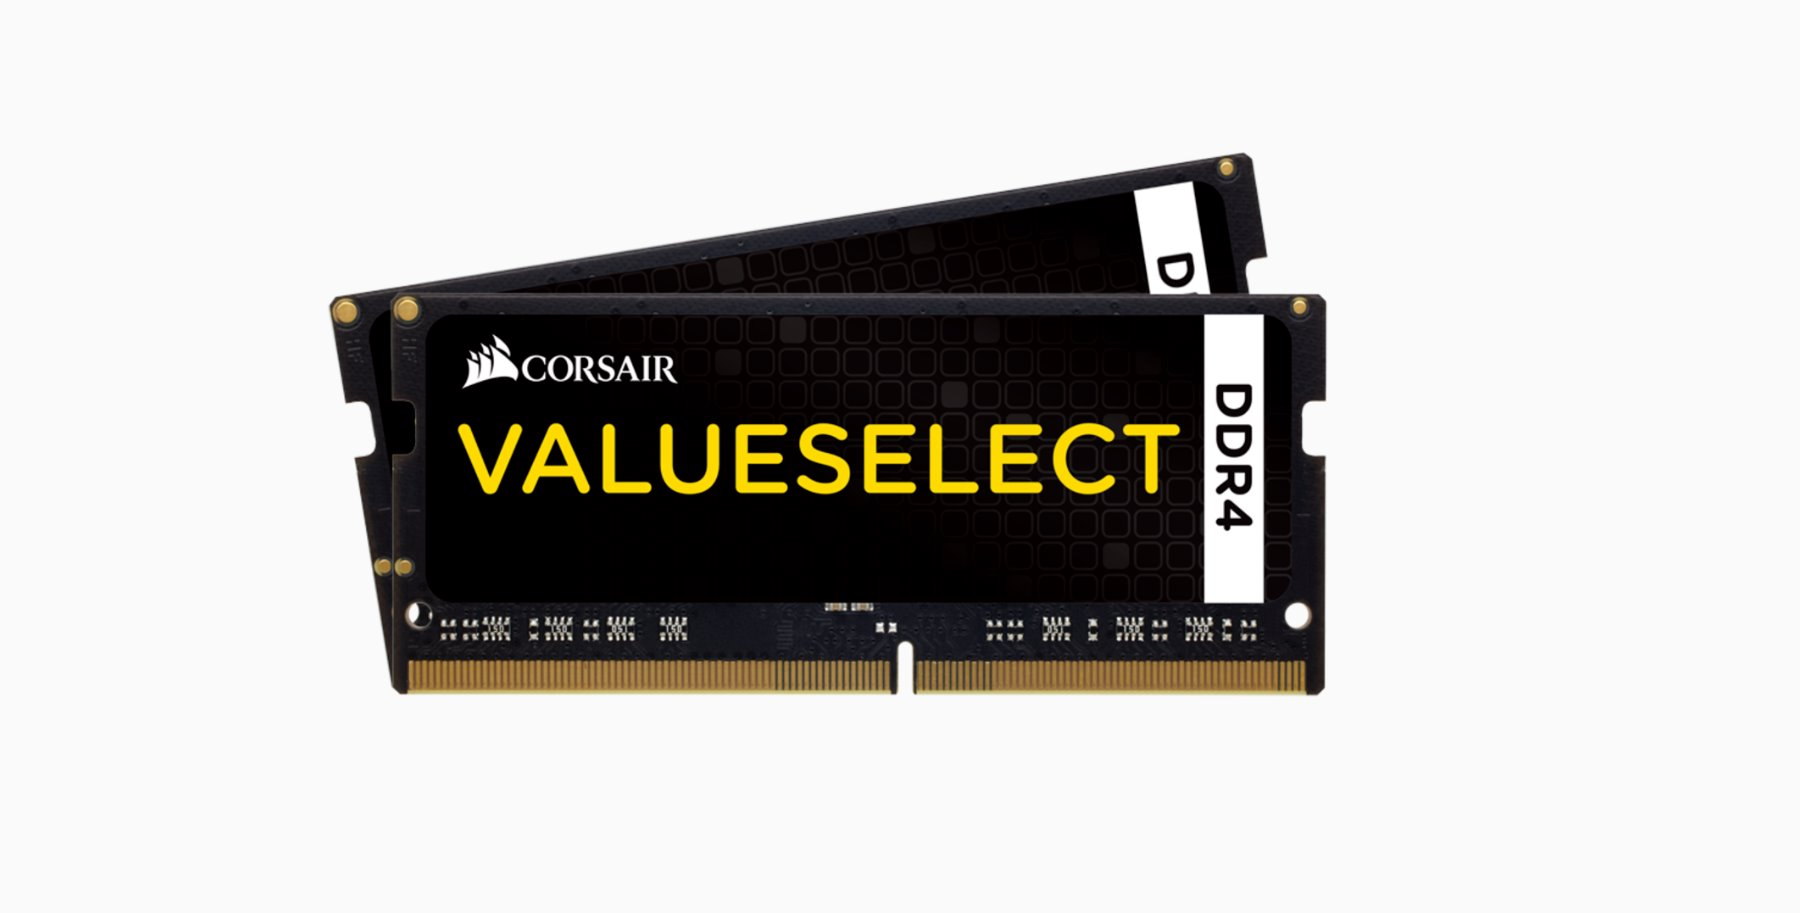 Corsair DDR4 16GB (2x8GB) Value Select SODIMM 2133MHz CL15